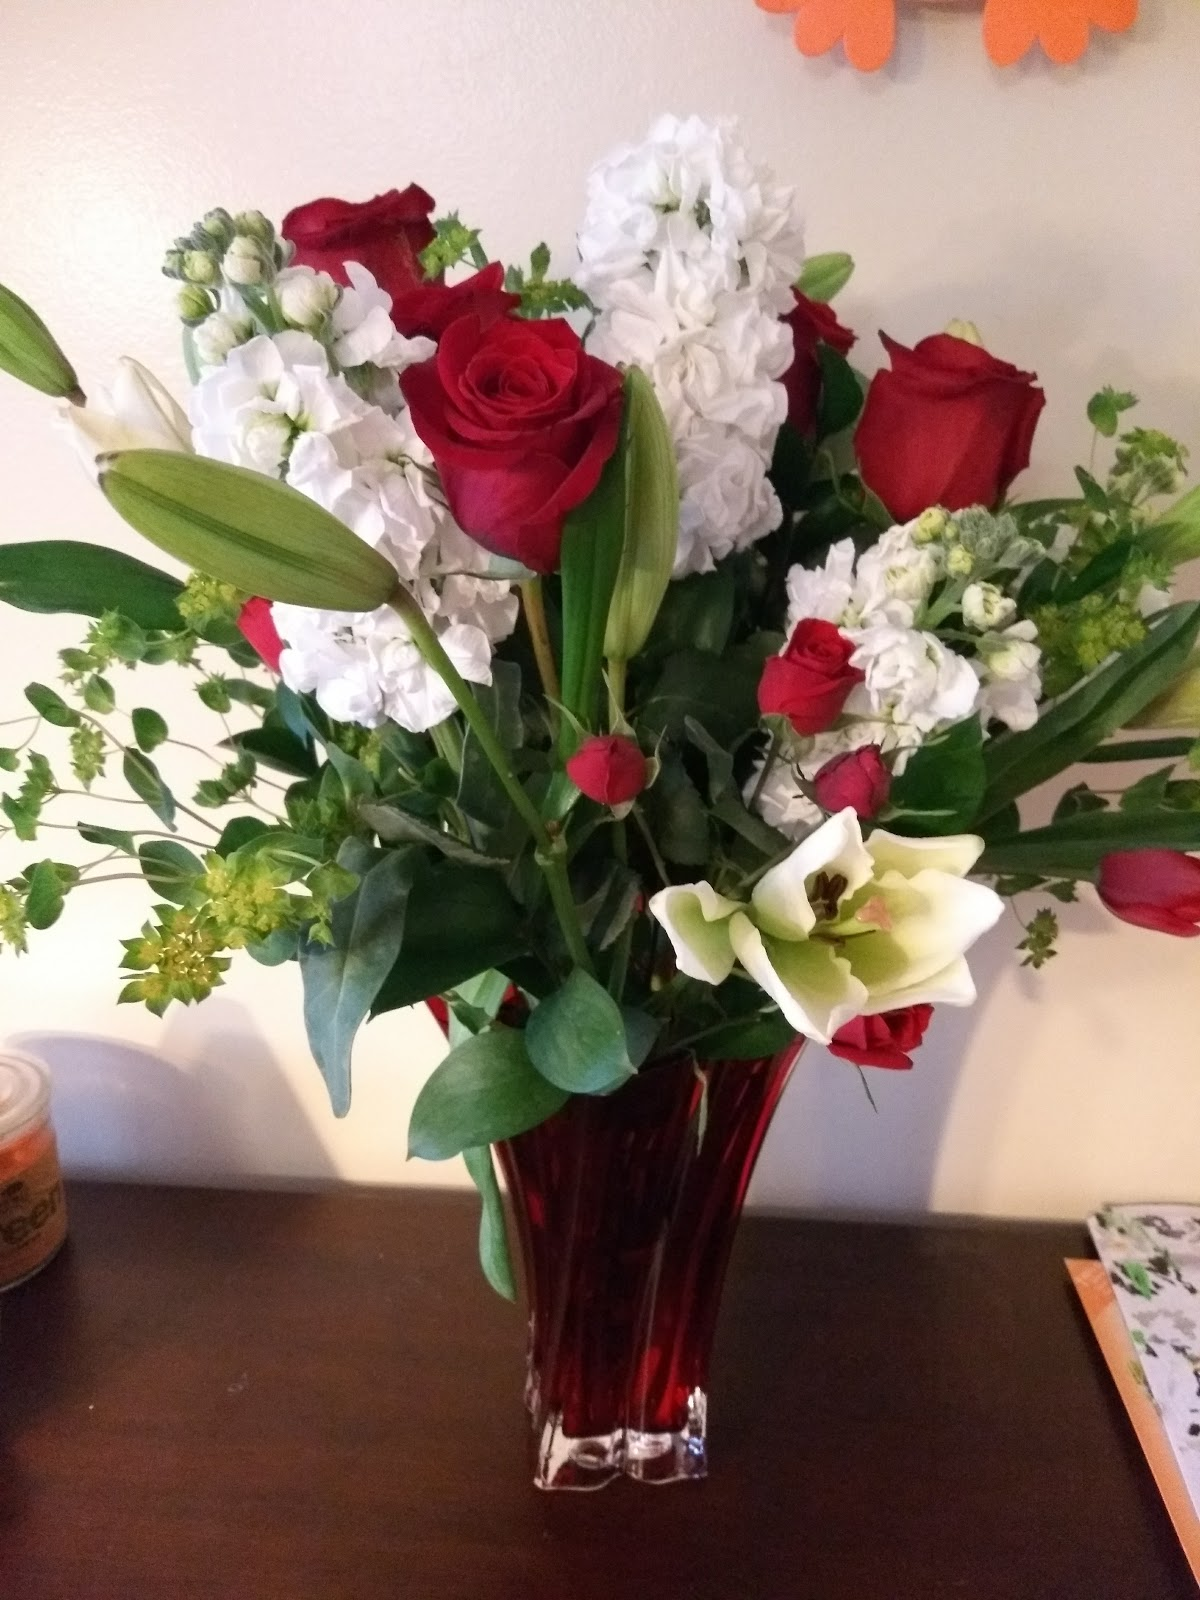 Celebrate valentines day with teleflora handmadebytf love i received the beautiful loves passion bouquet by teleflora and it may be one of the most beautiful bouquets i have ever received or displayed in my home izmirmasajfo